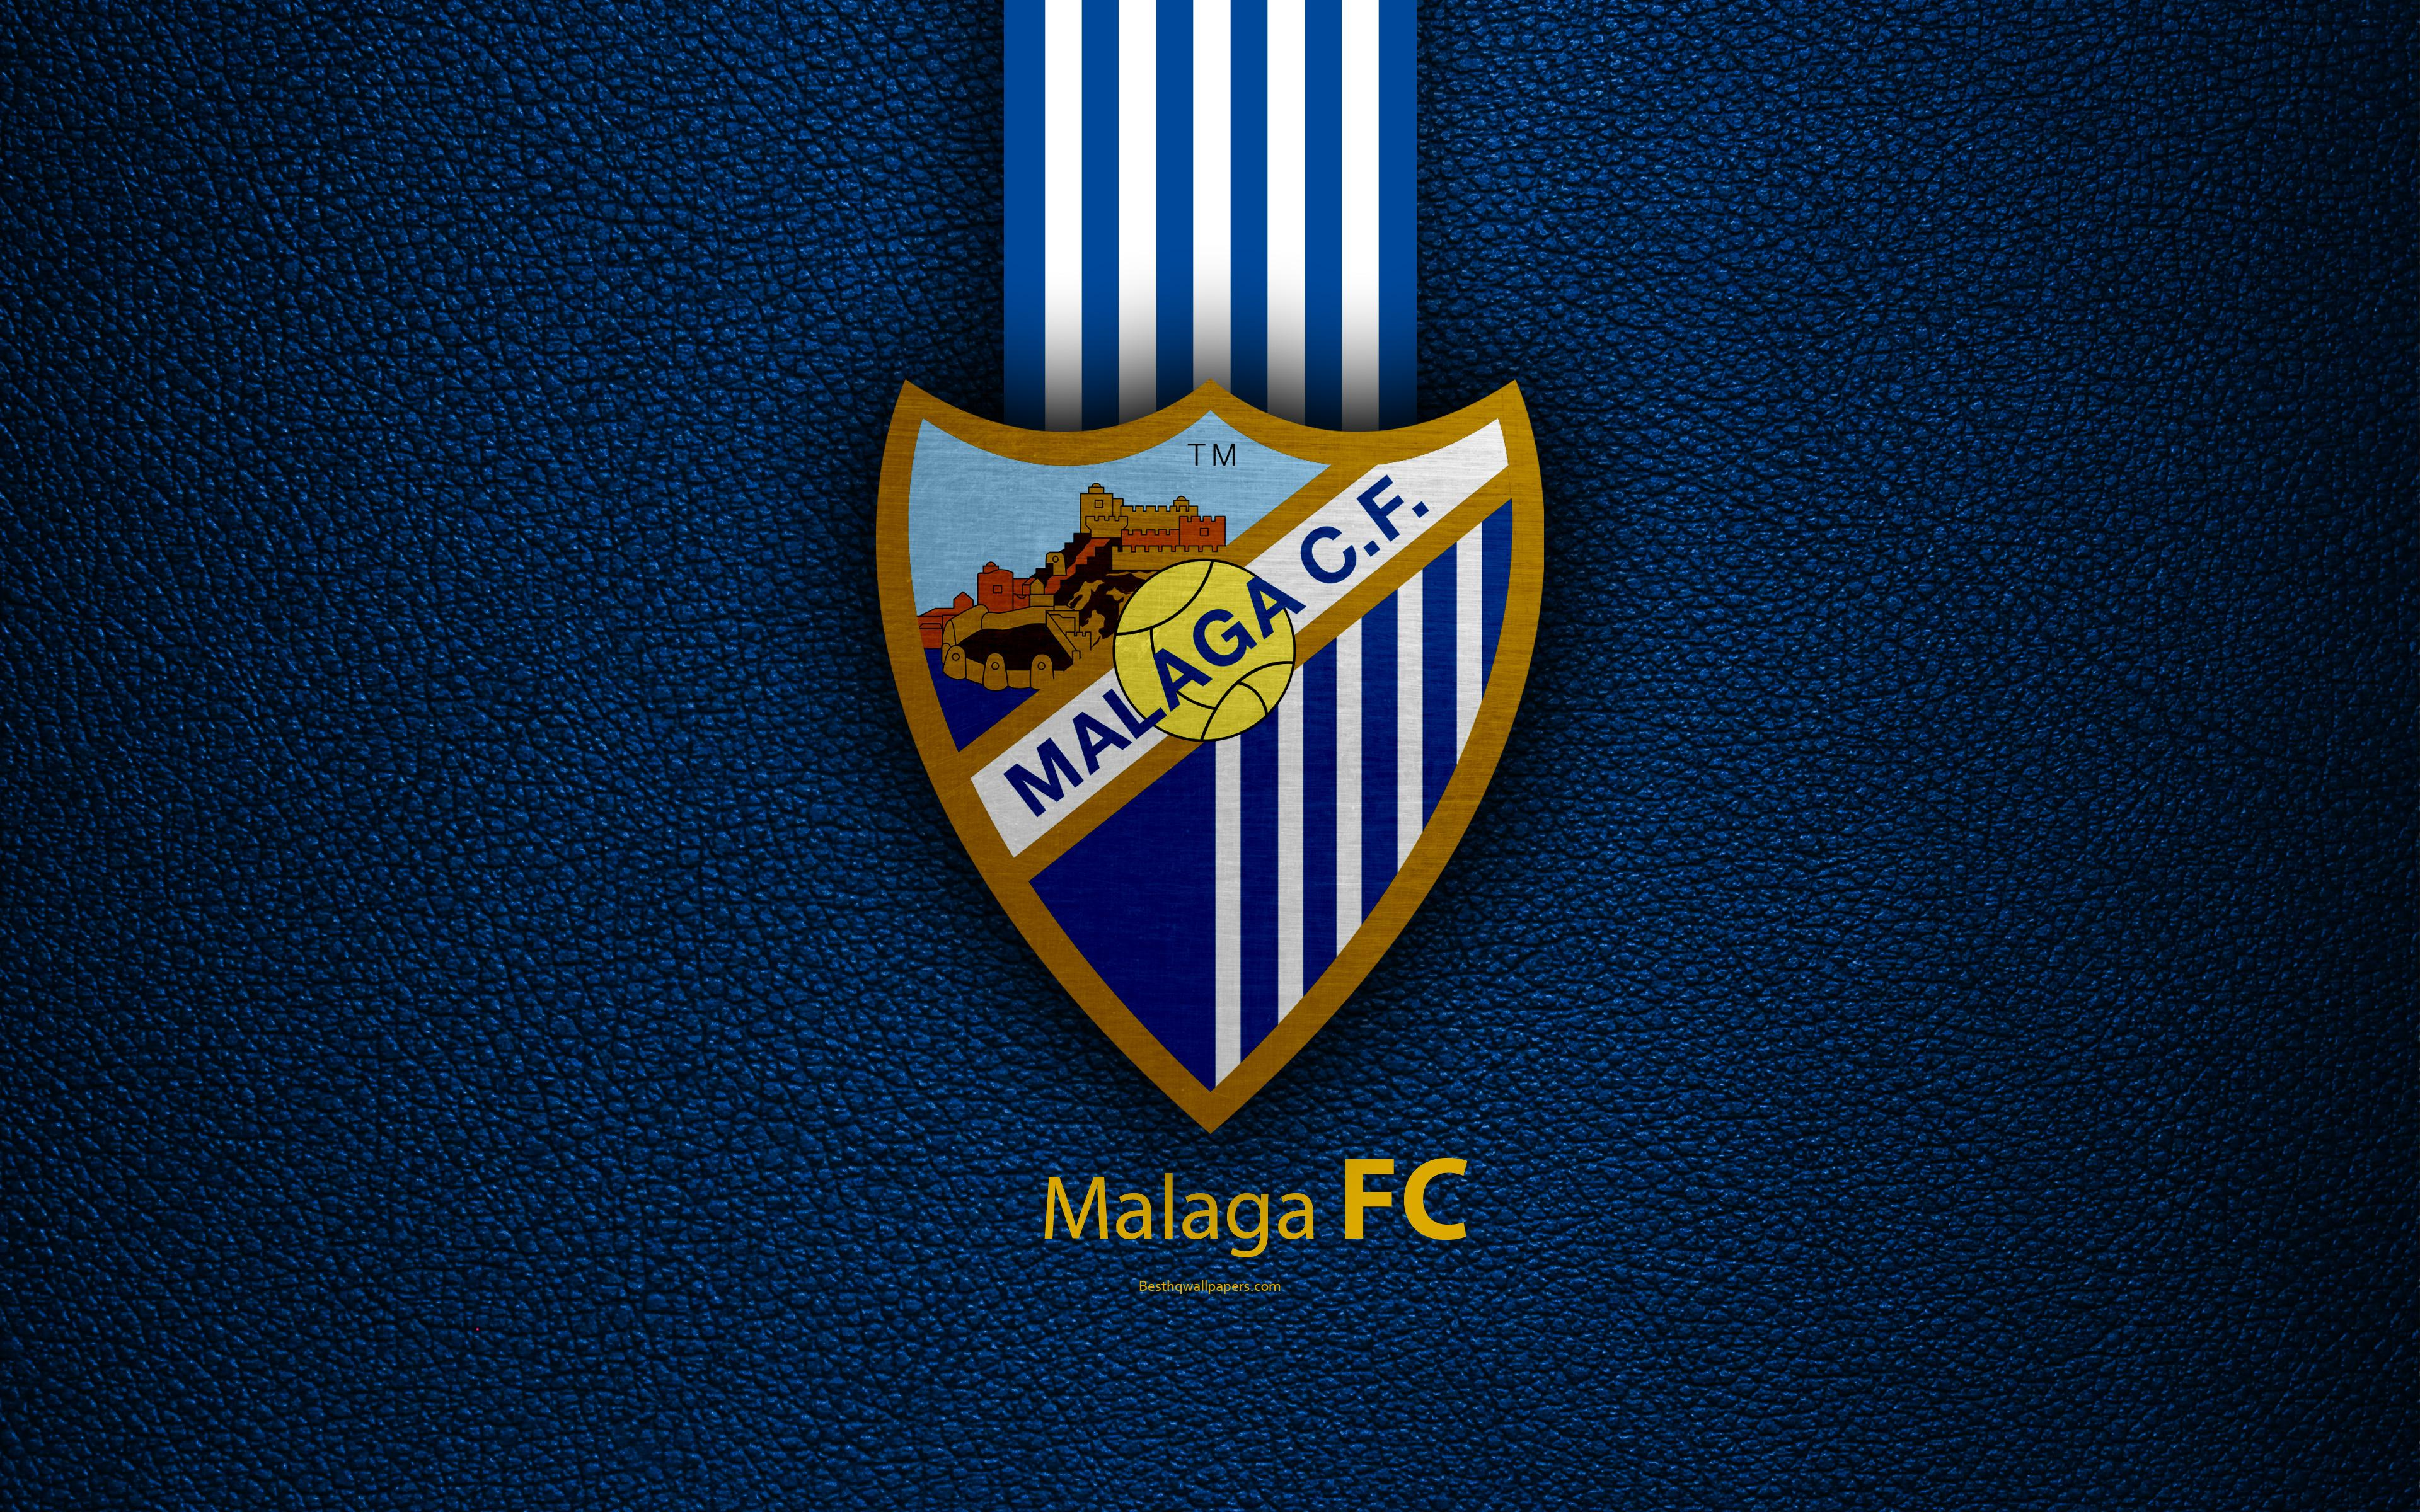 Download wallpapers Malaga FC, 4K, Spanish football club, La Liga